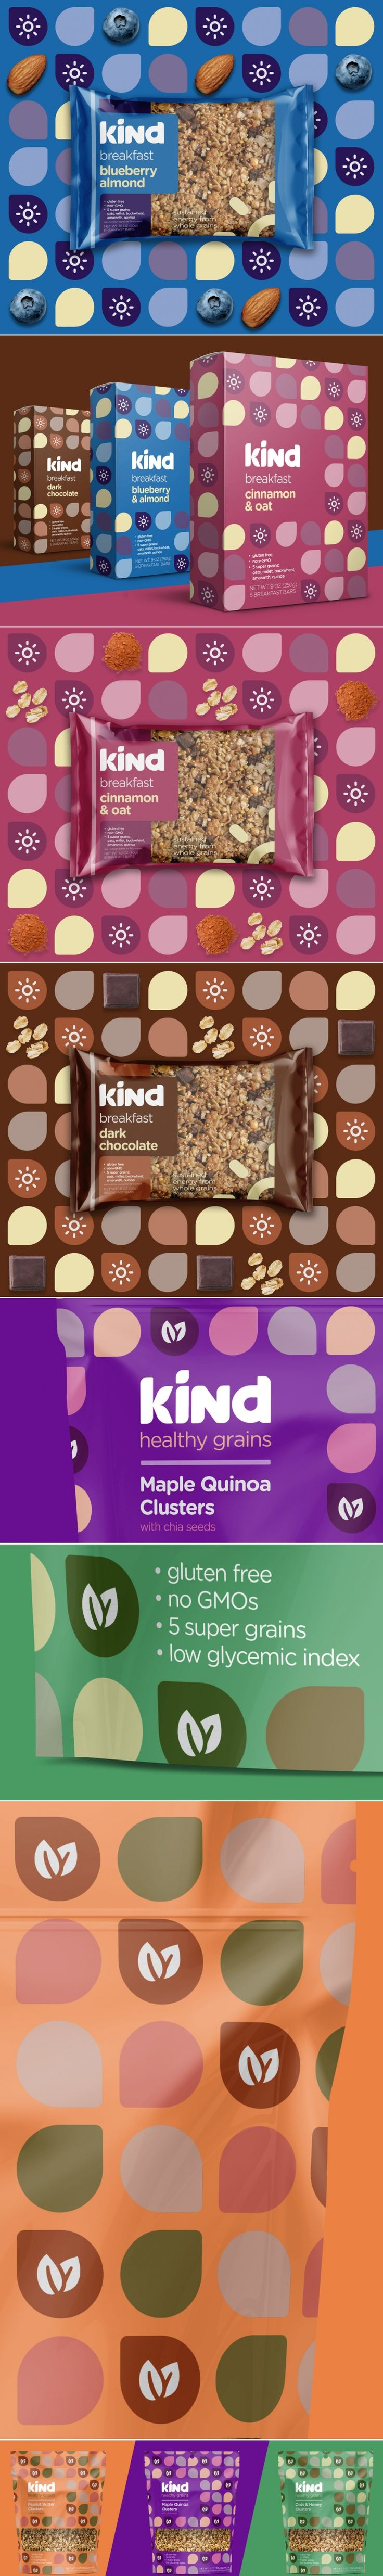 We Love This Rebranded Concept for KIND Bars — The Dieline | Packaging & Branding Design & Innovation News